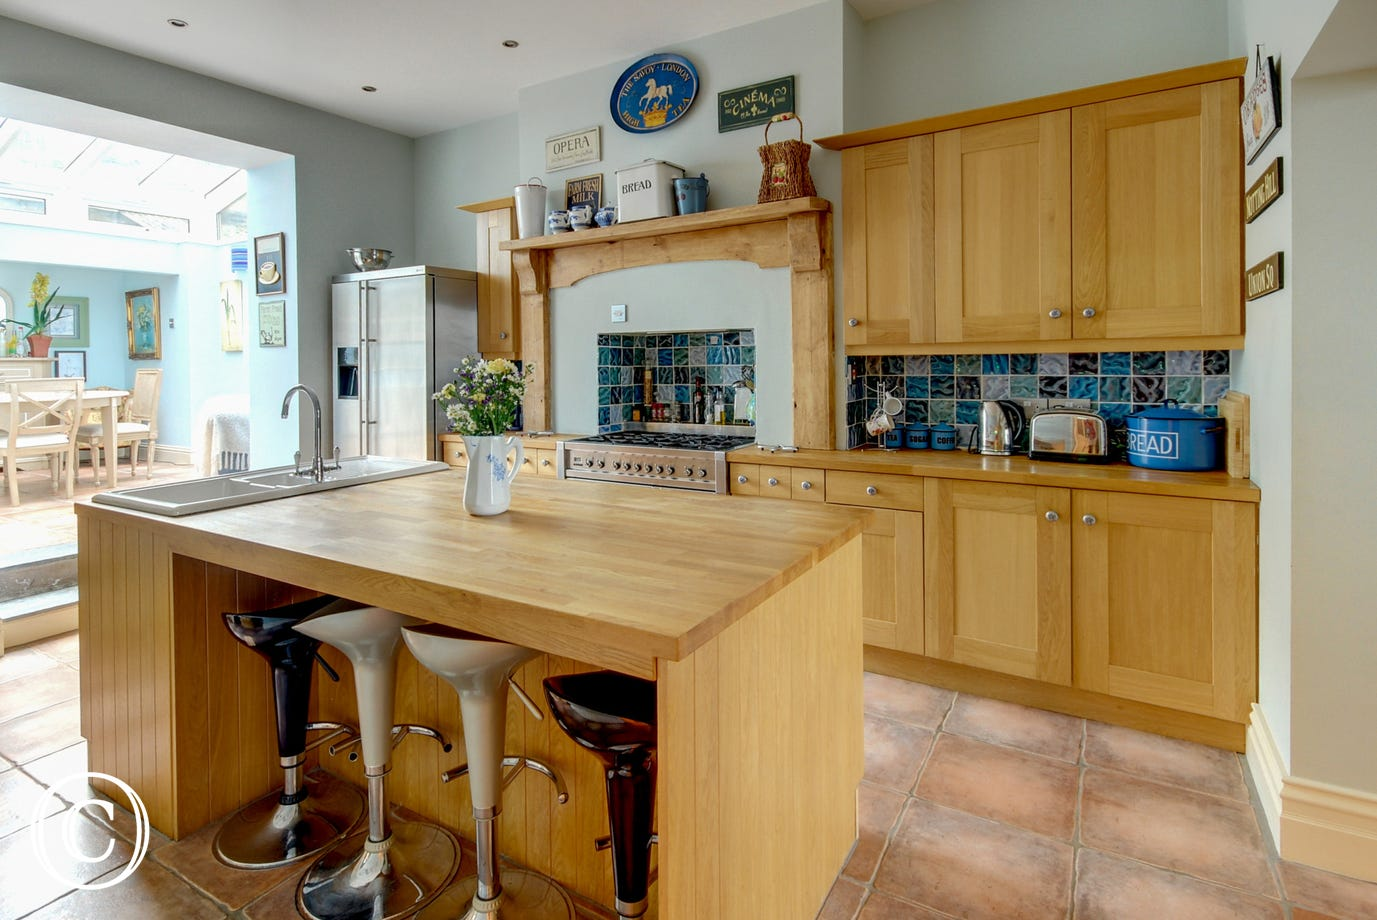 The kitchen is situated between the breakfast room and dining room which makes socialising a pleasure